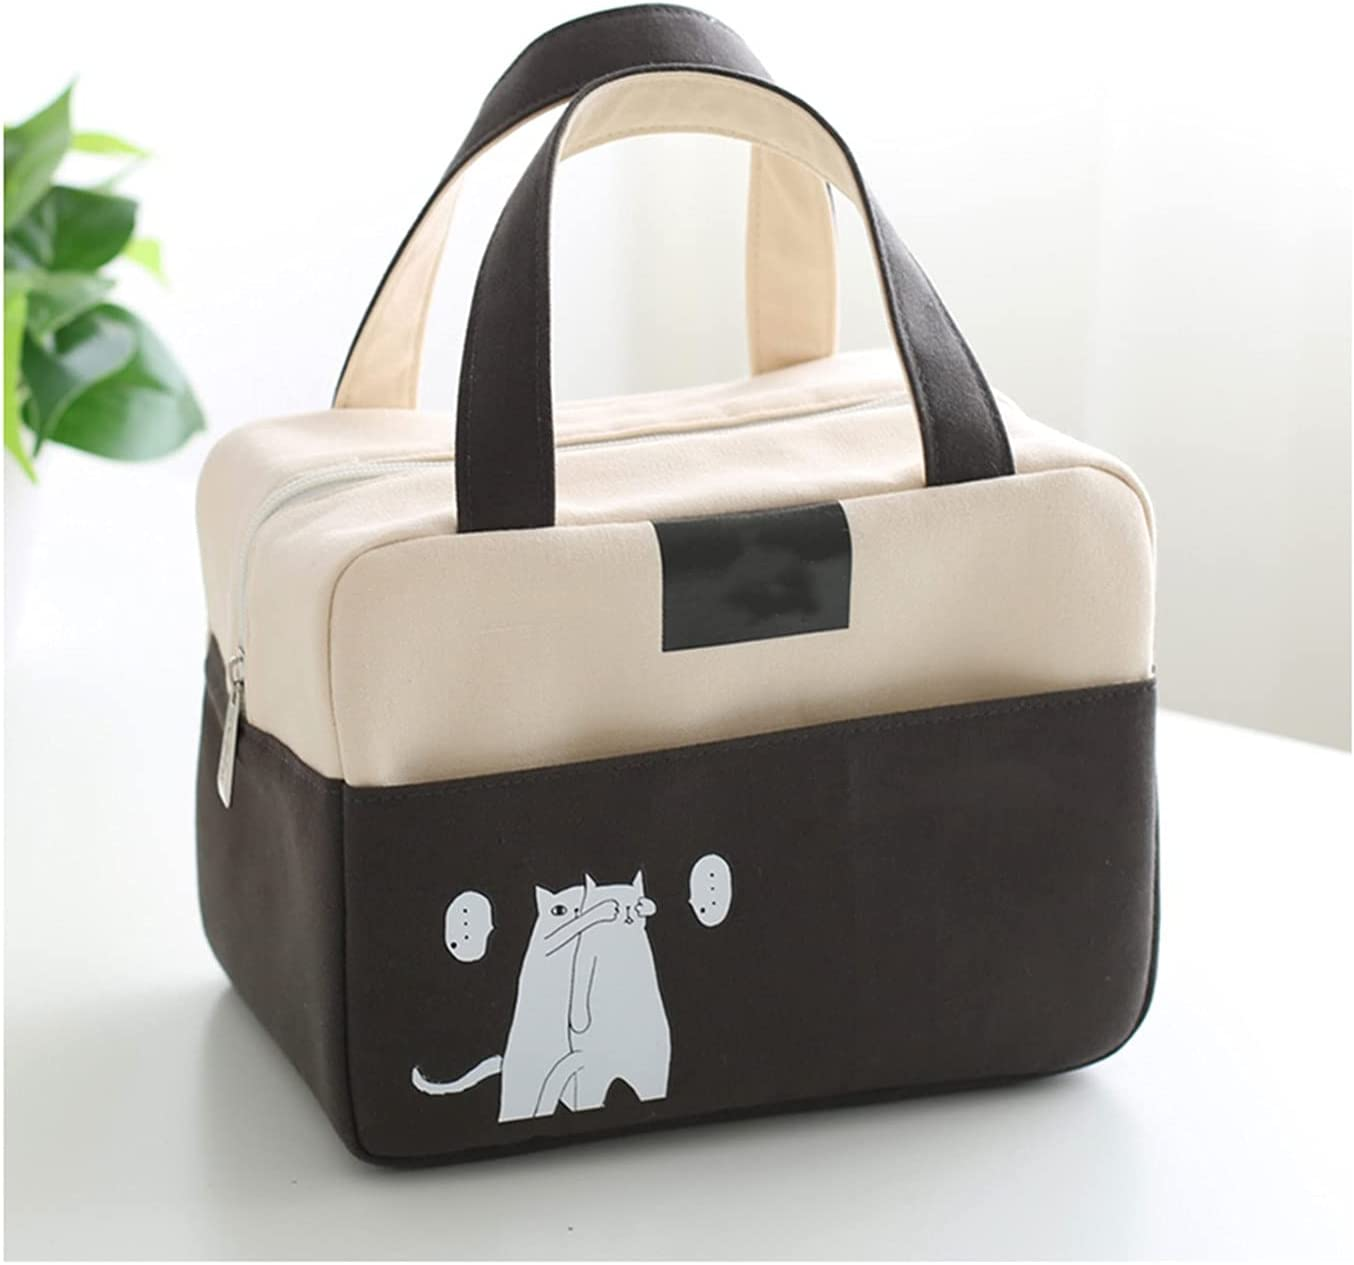 Insulated Lunch Bags Reusable Box Arlington Mall Tote Durable f Large Sales of SALE items from new works Bag